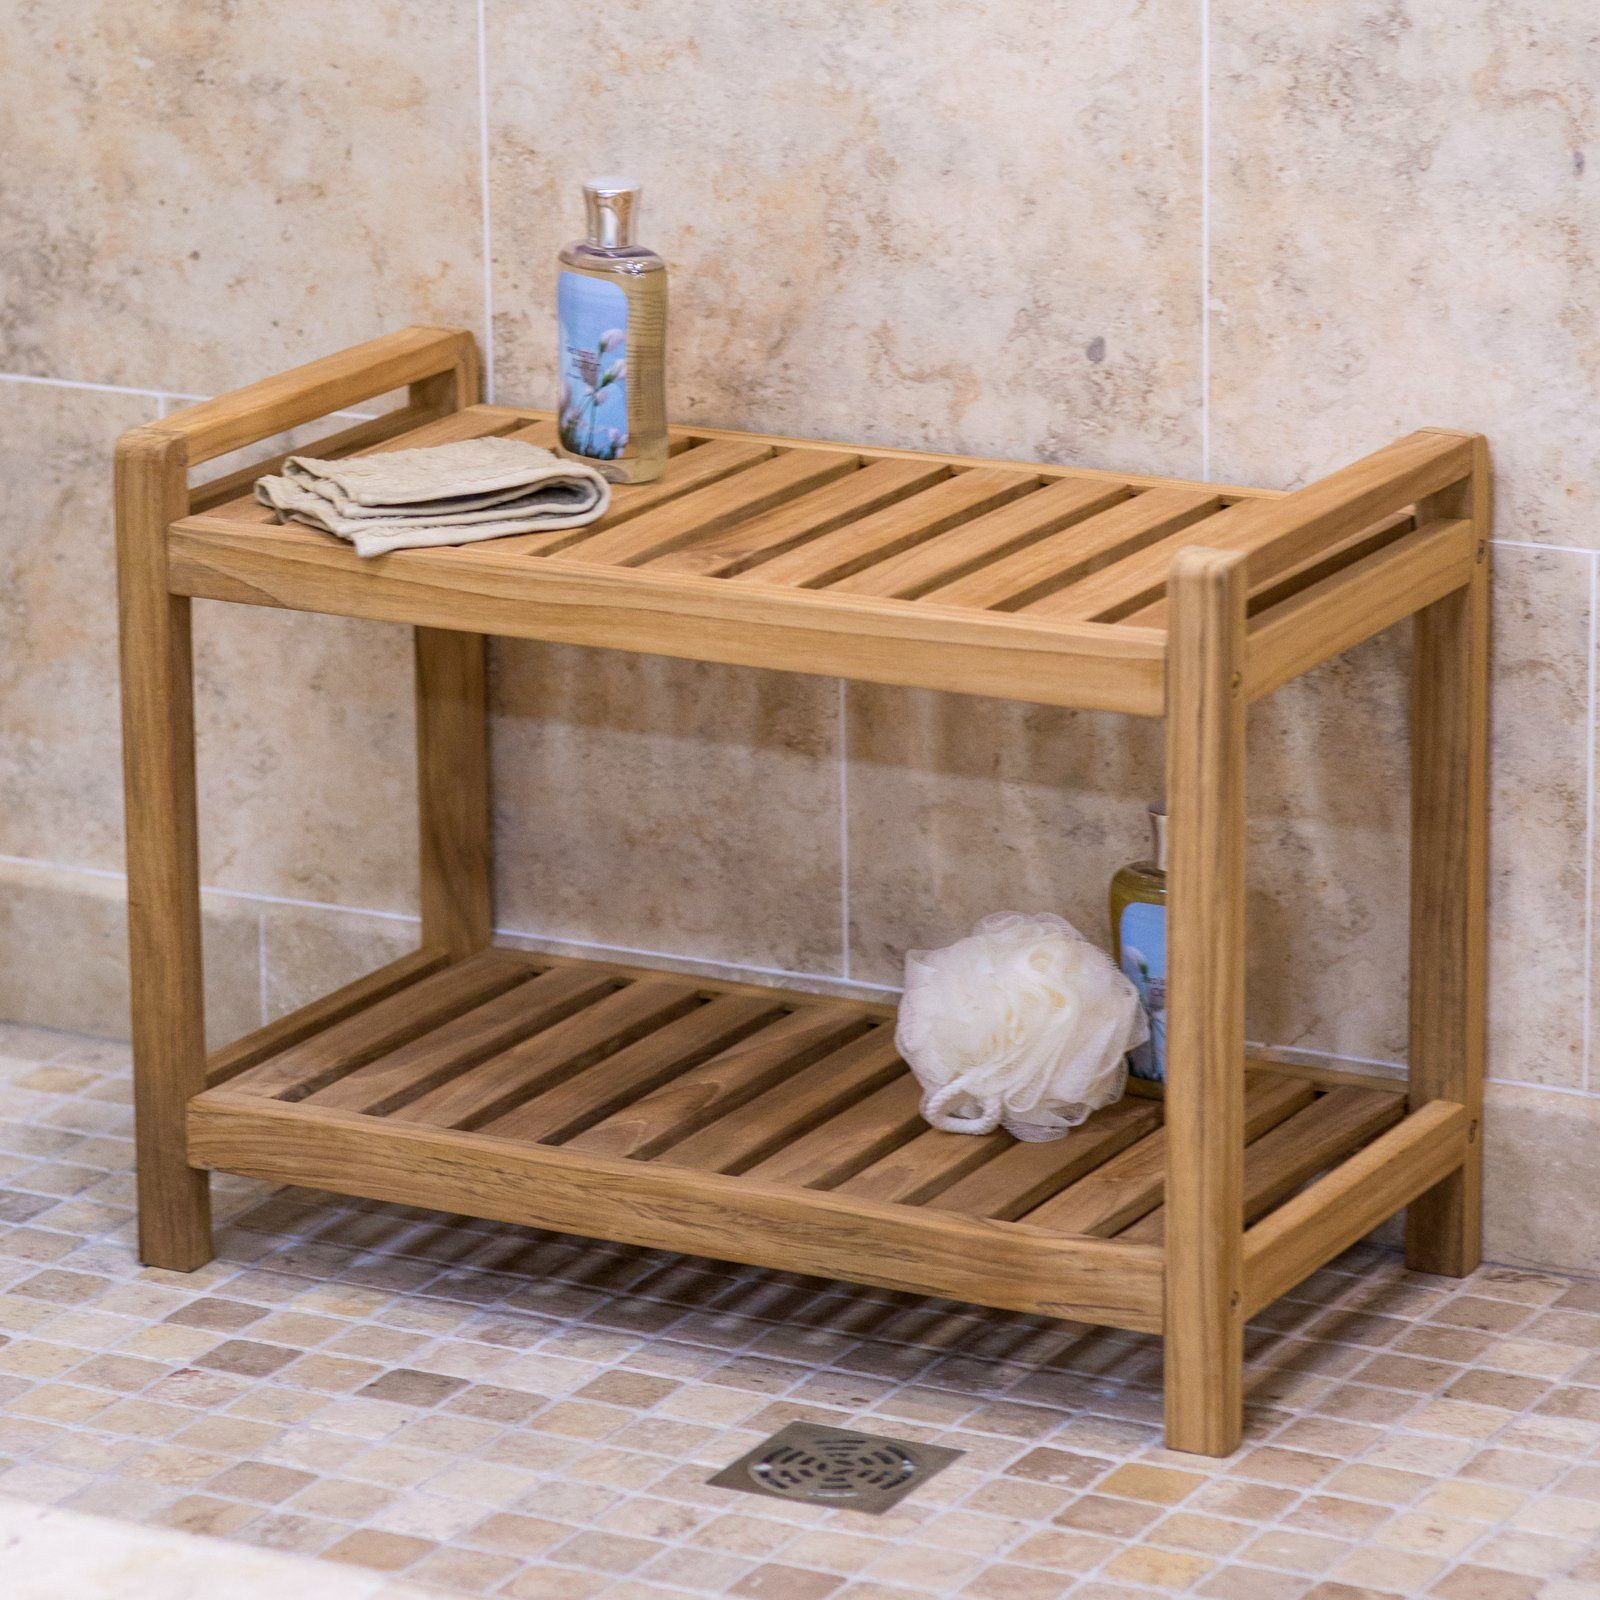 benches small shower bunch of ideas stool specialties teak stools arb bathroom